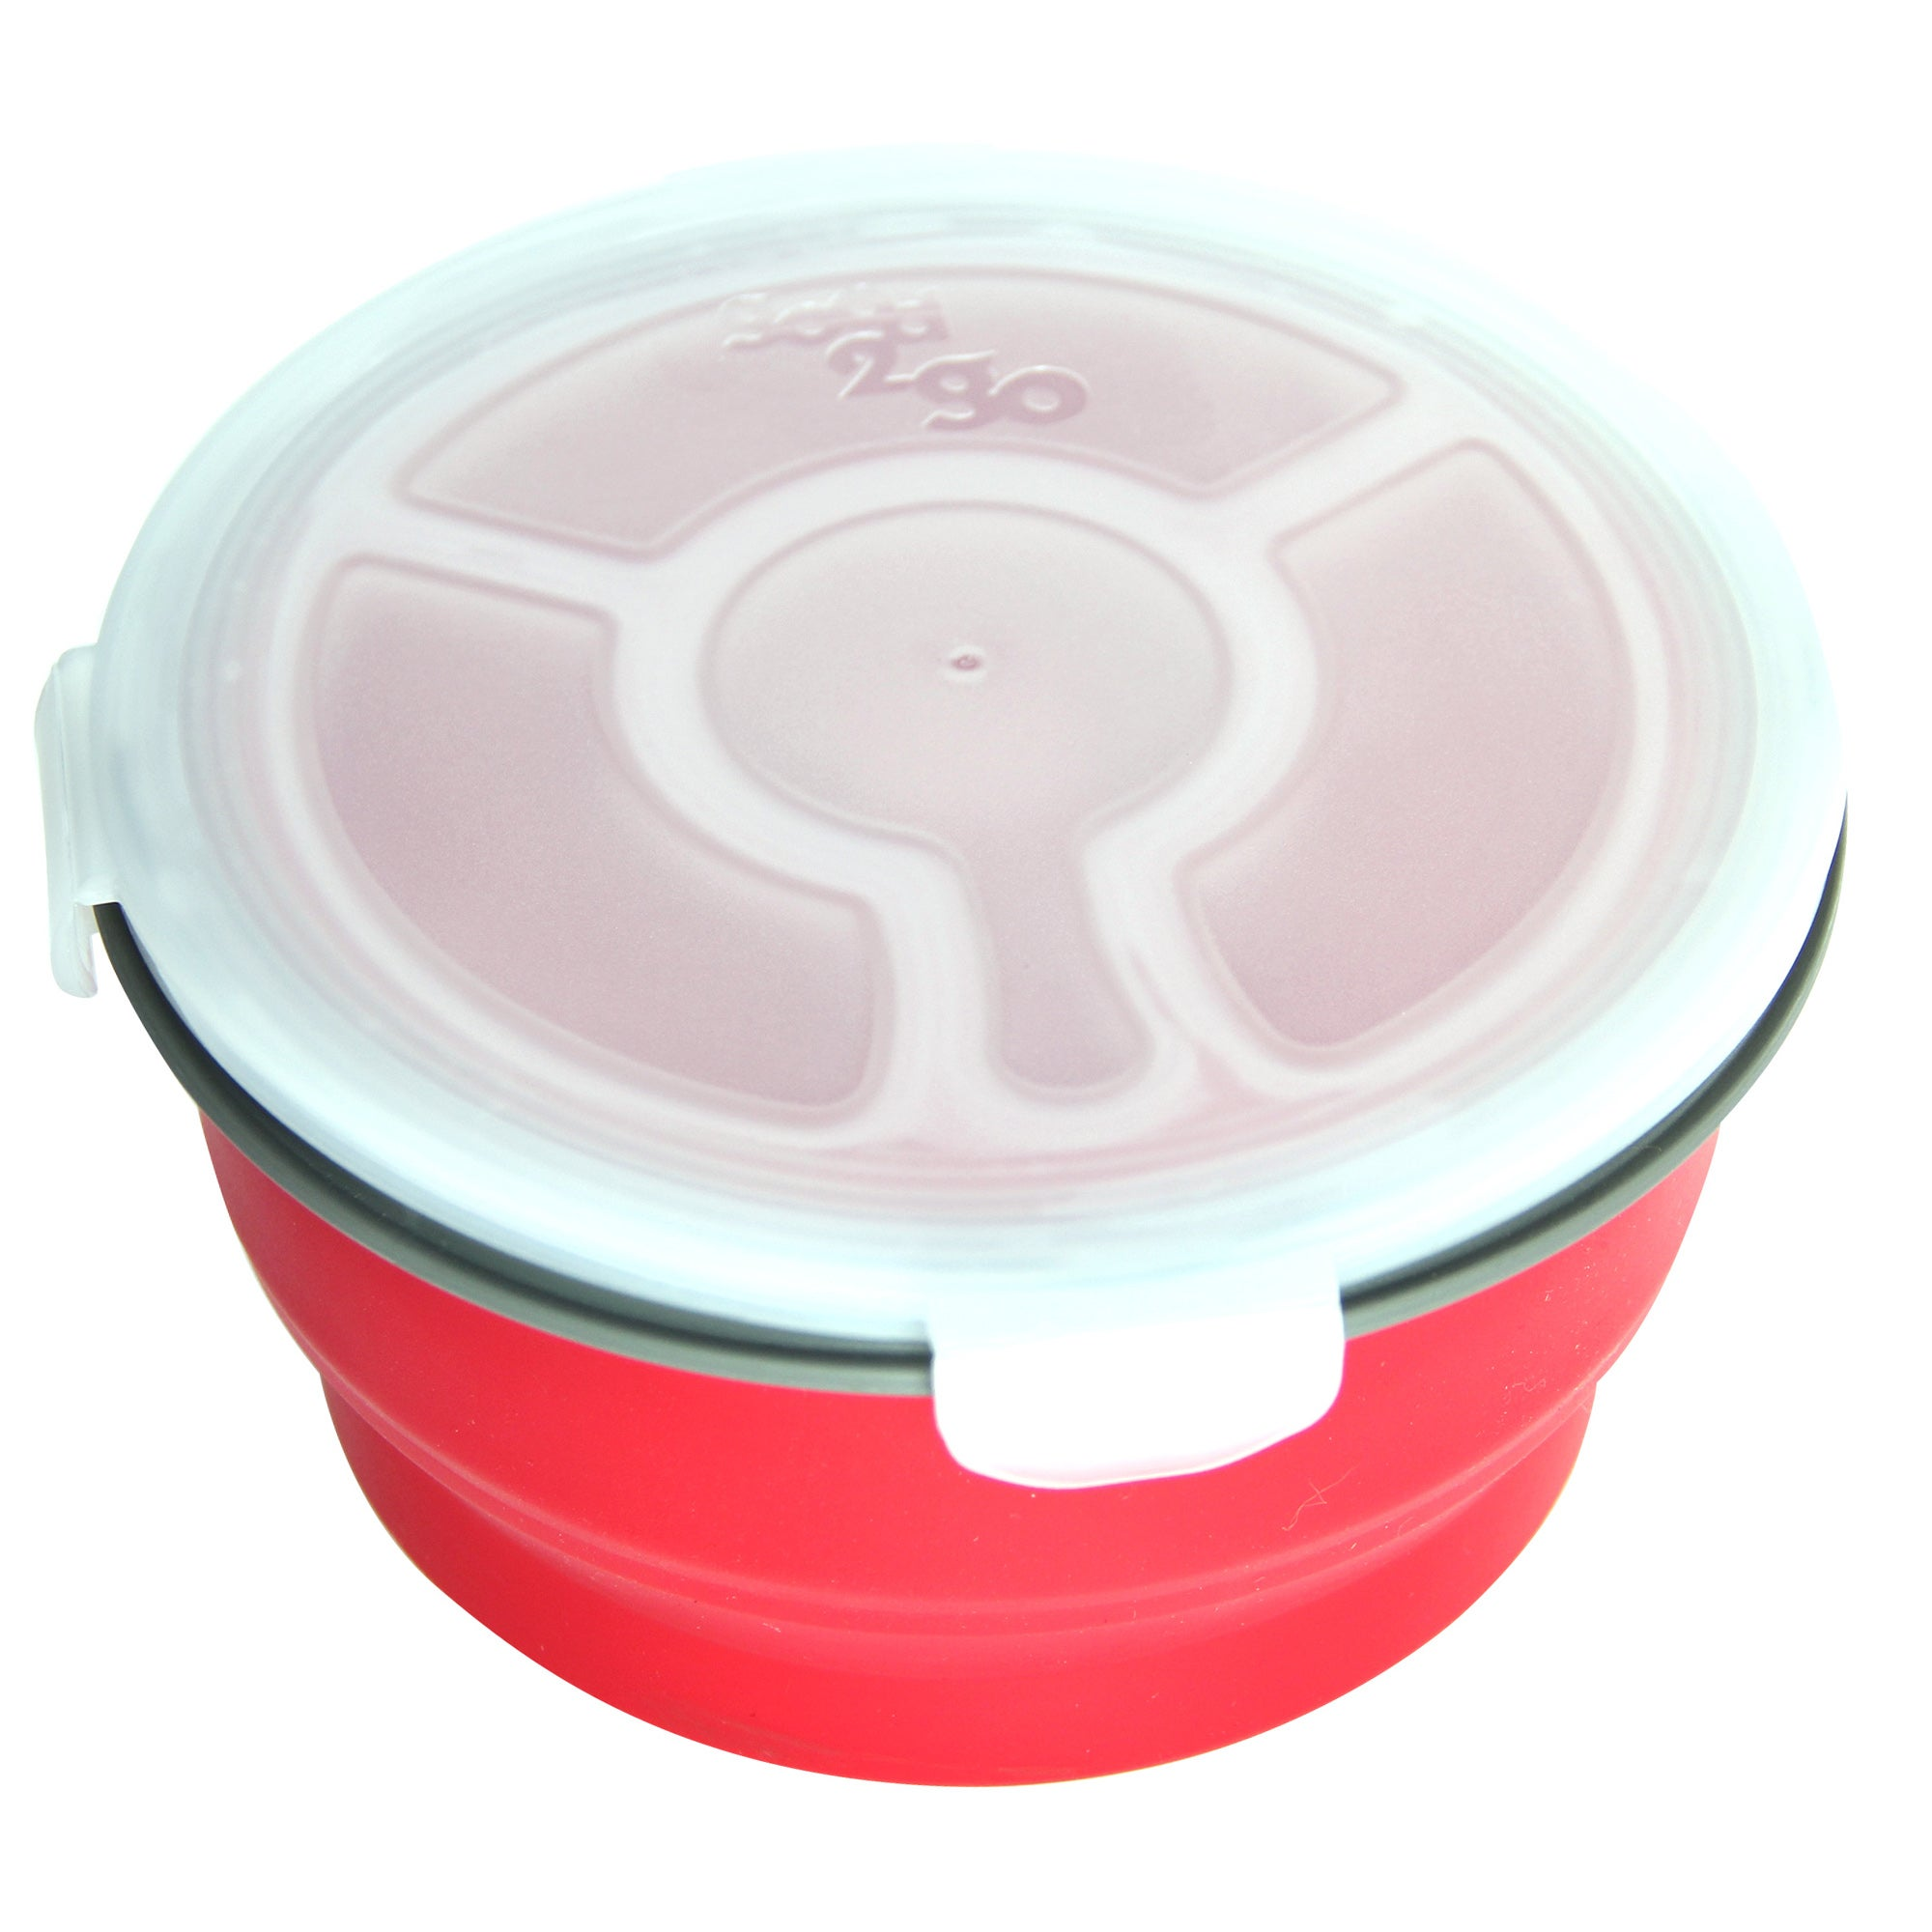 Good2Go 3 Compartment Circular Container